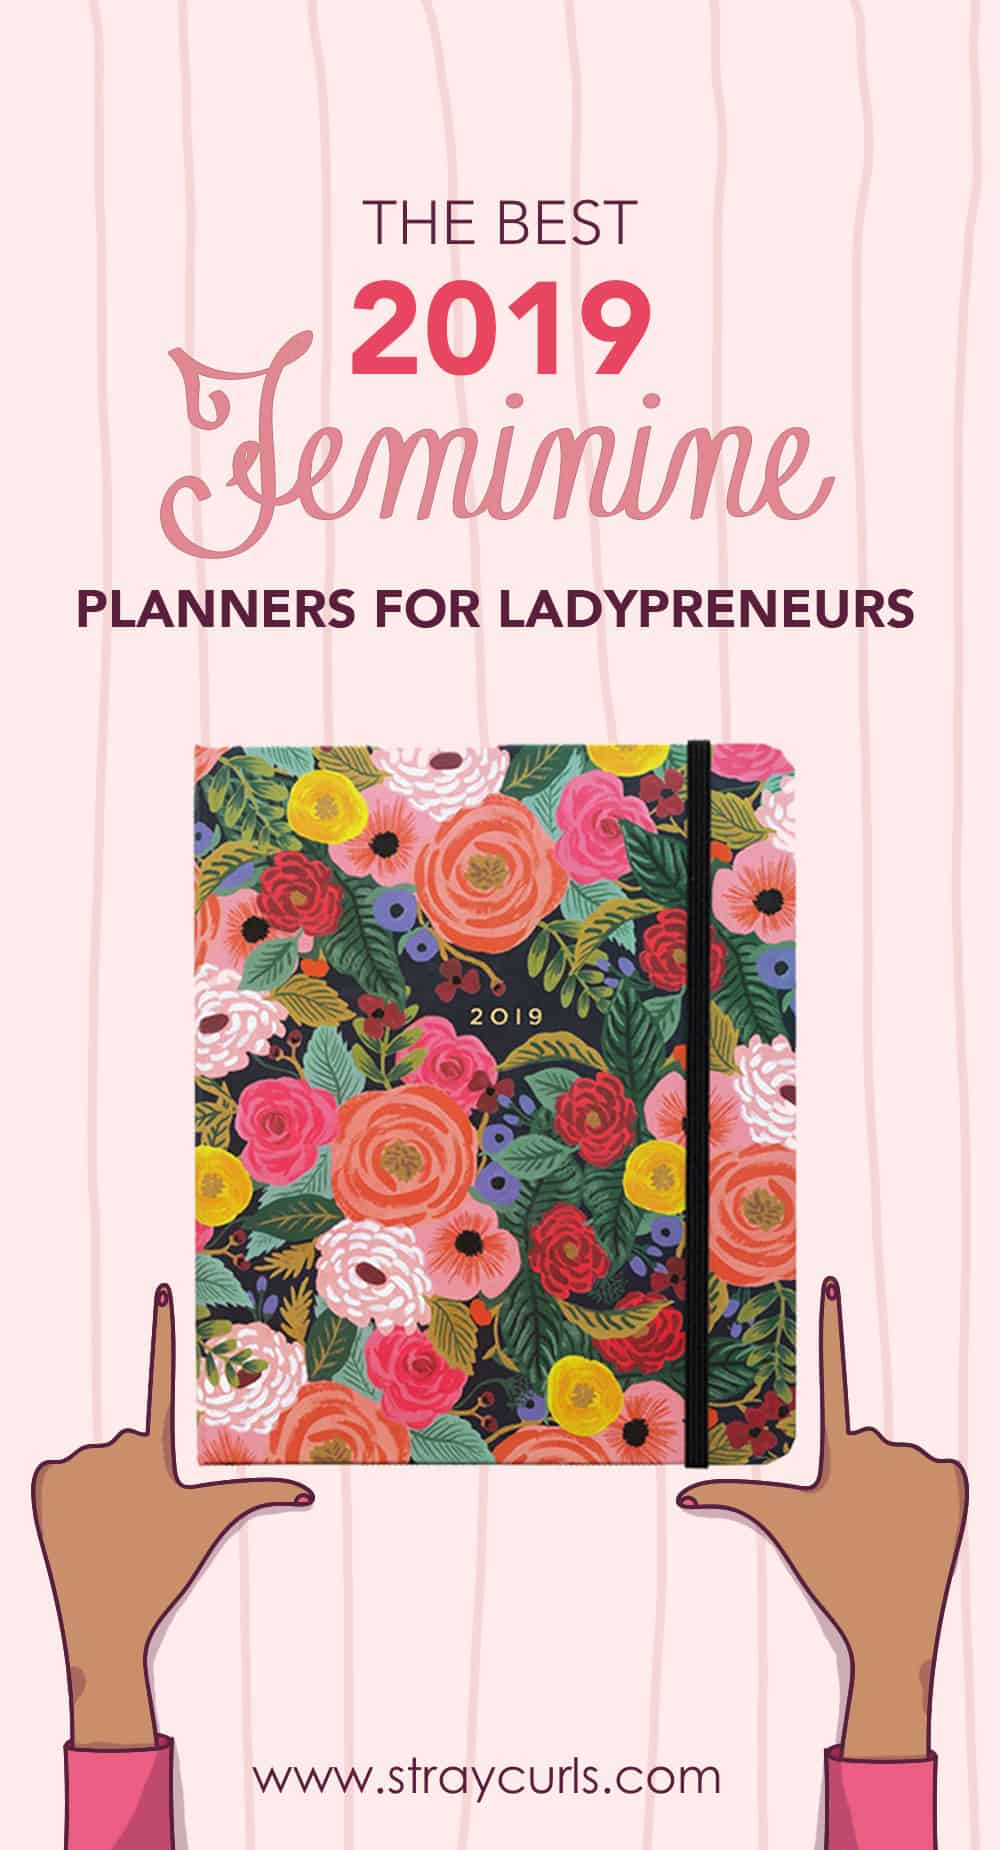 Read this amazing review of the best 2019 planners for bloggers, freelances and ladypreneurs. Each planner is a yearly planner where you can write your to-dos and notes. Perfect for blogging.